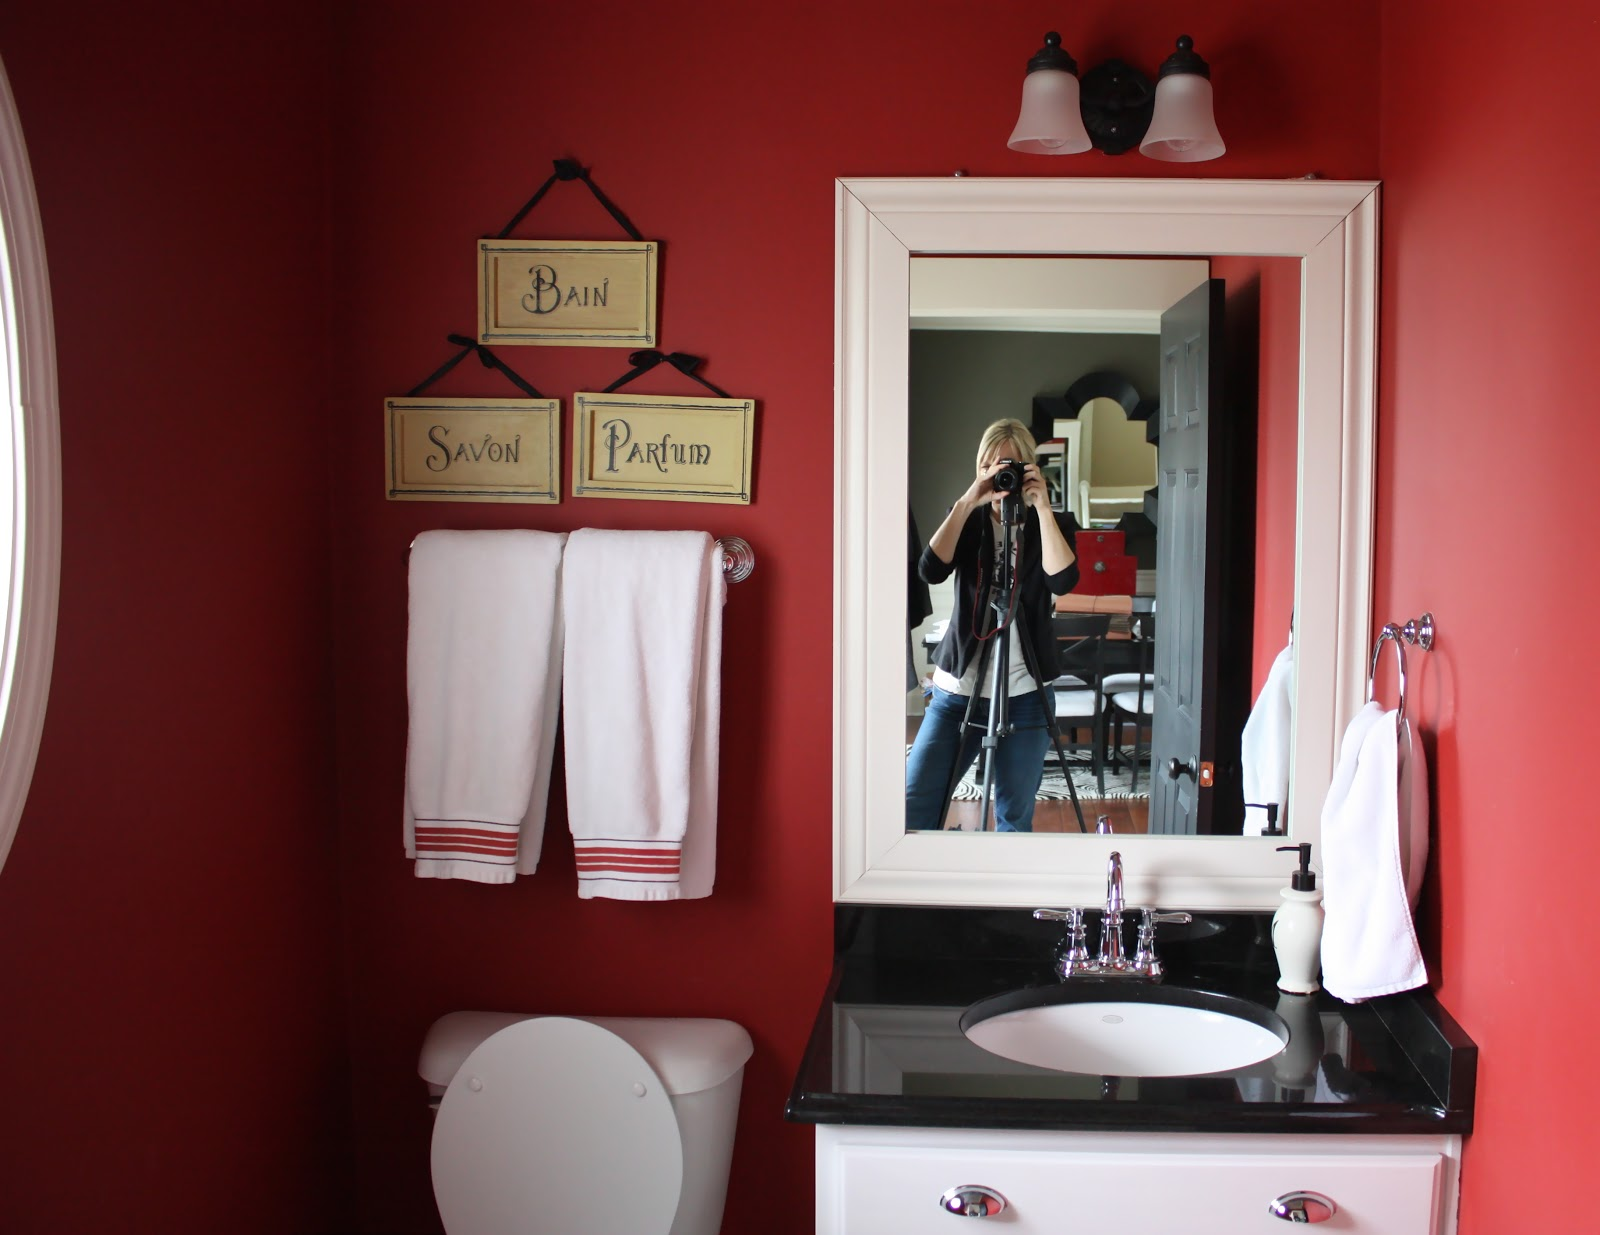 Luxury My Powder Room Makeover Reveal And a Giveaway